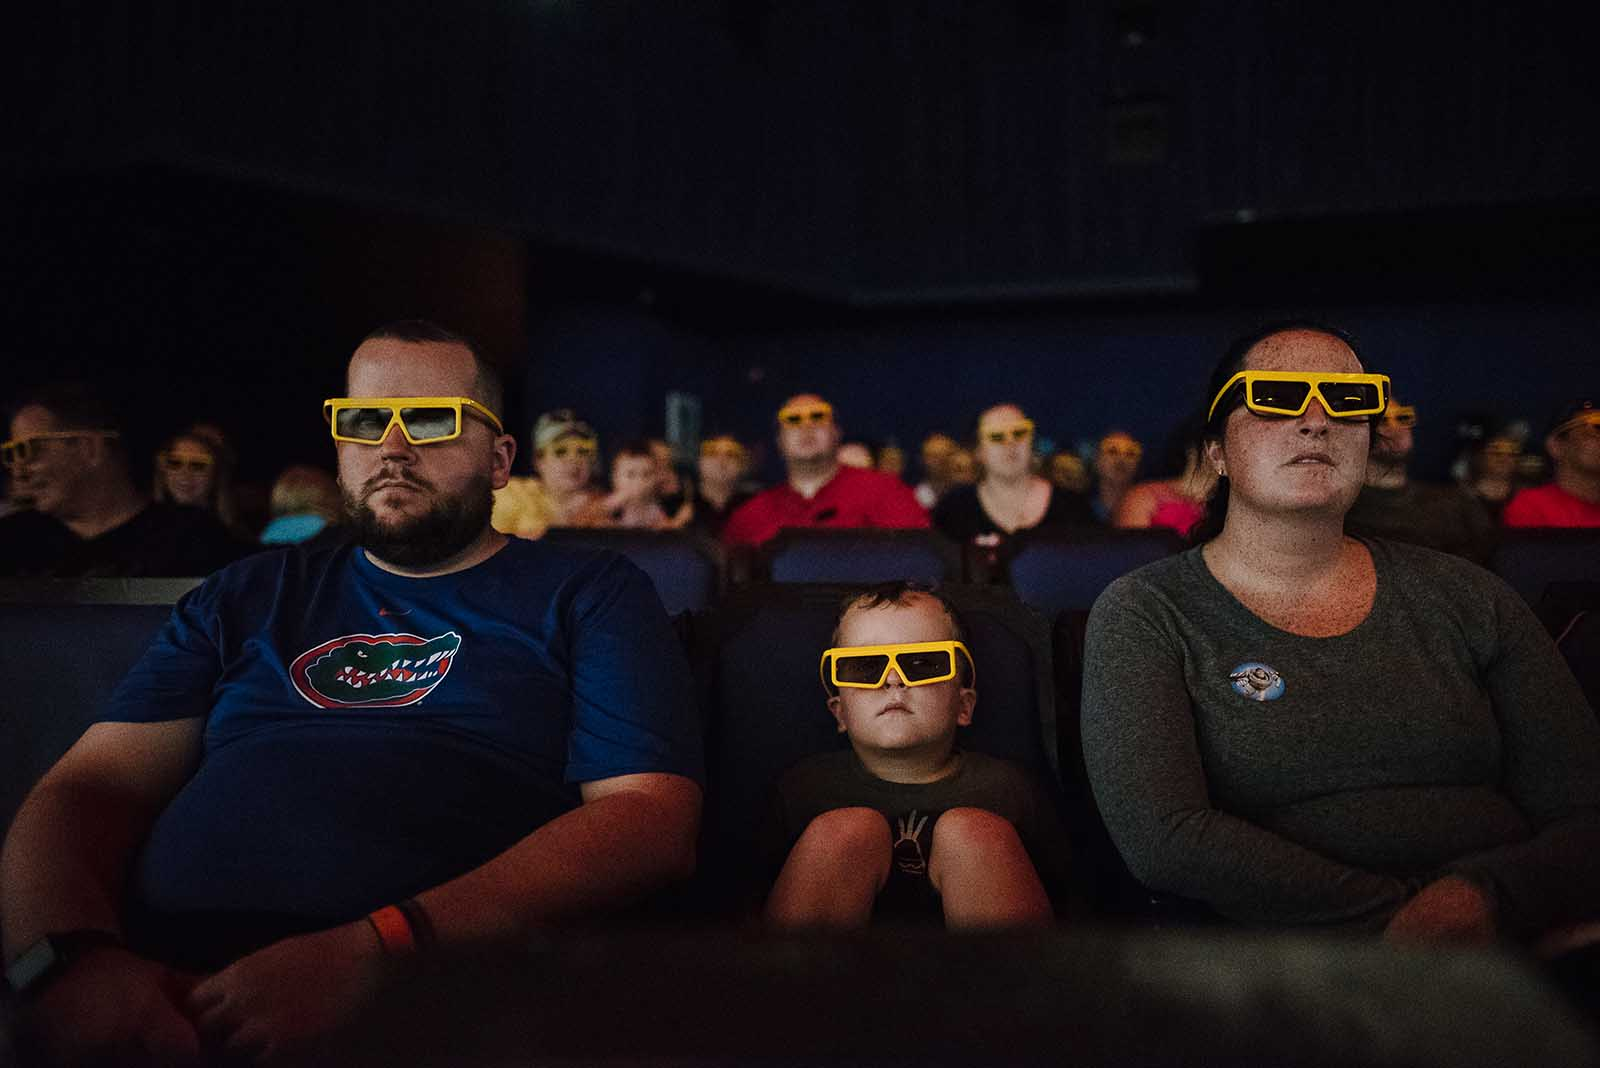 Disney photo of family in 3d glasses, Disney photo tips on available light